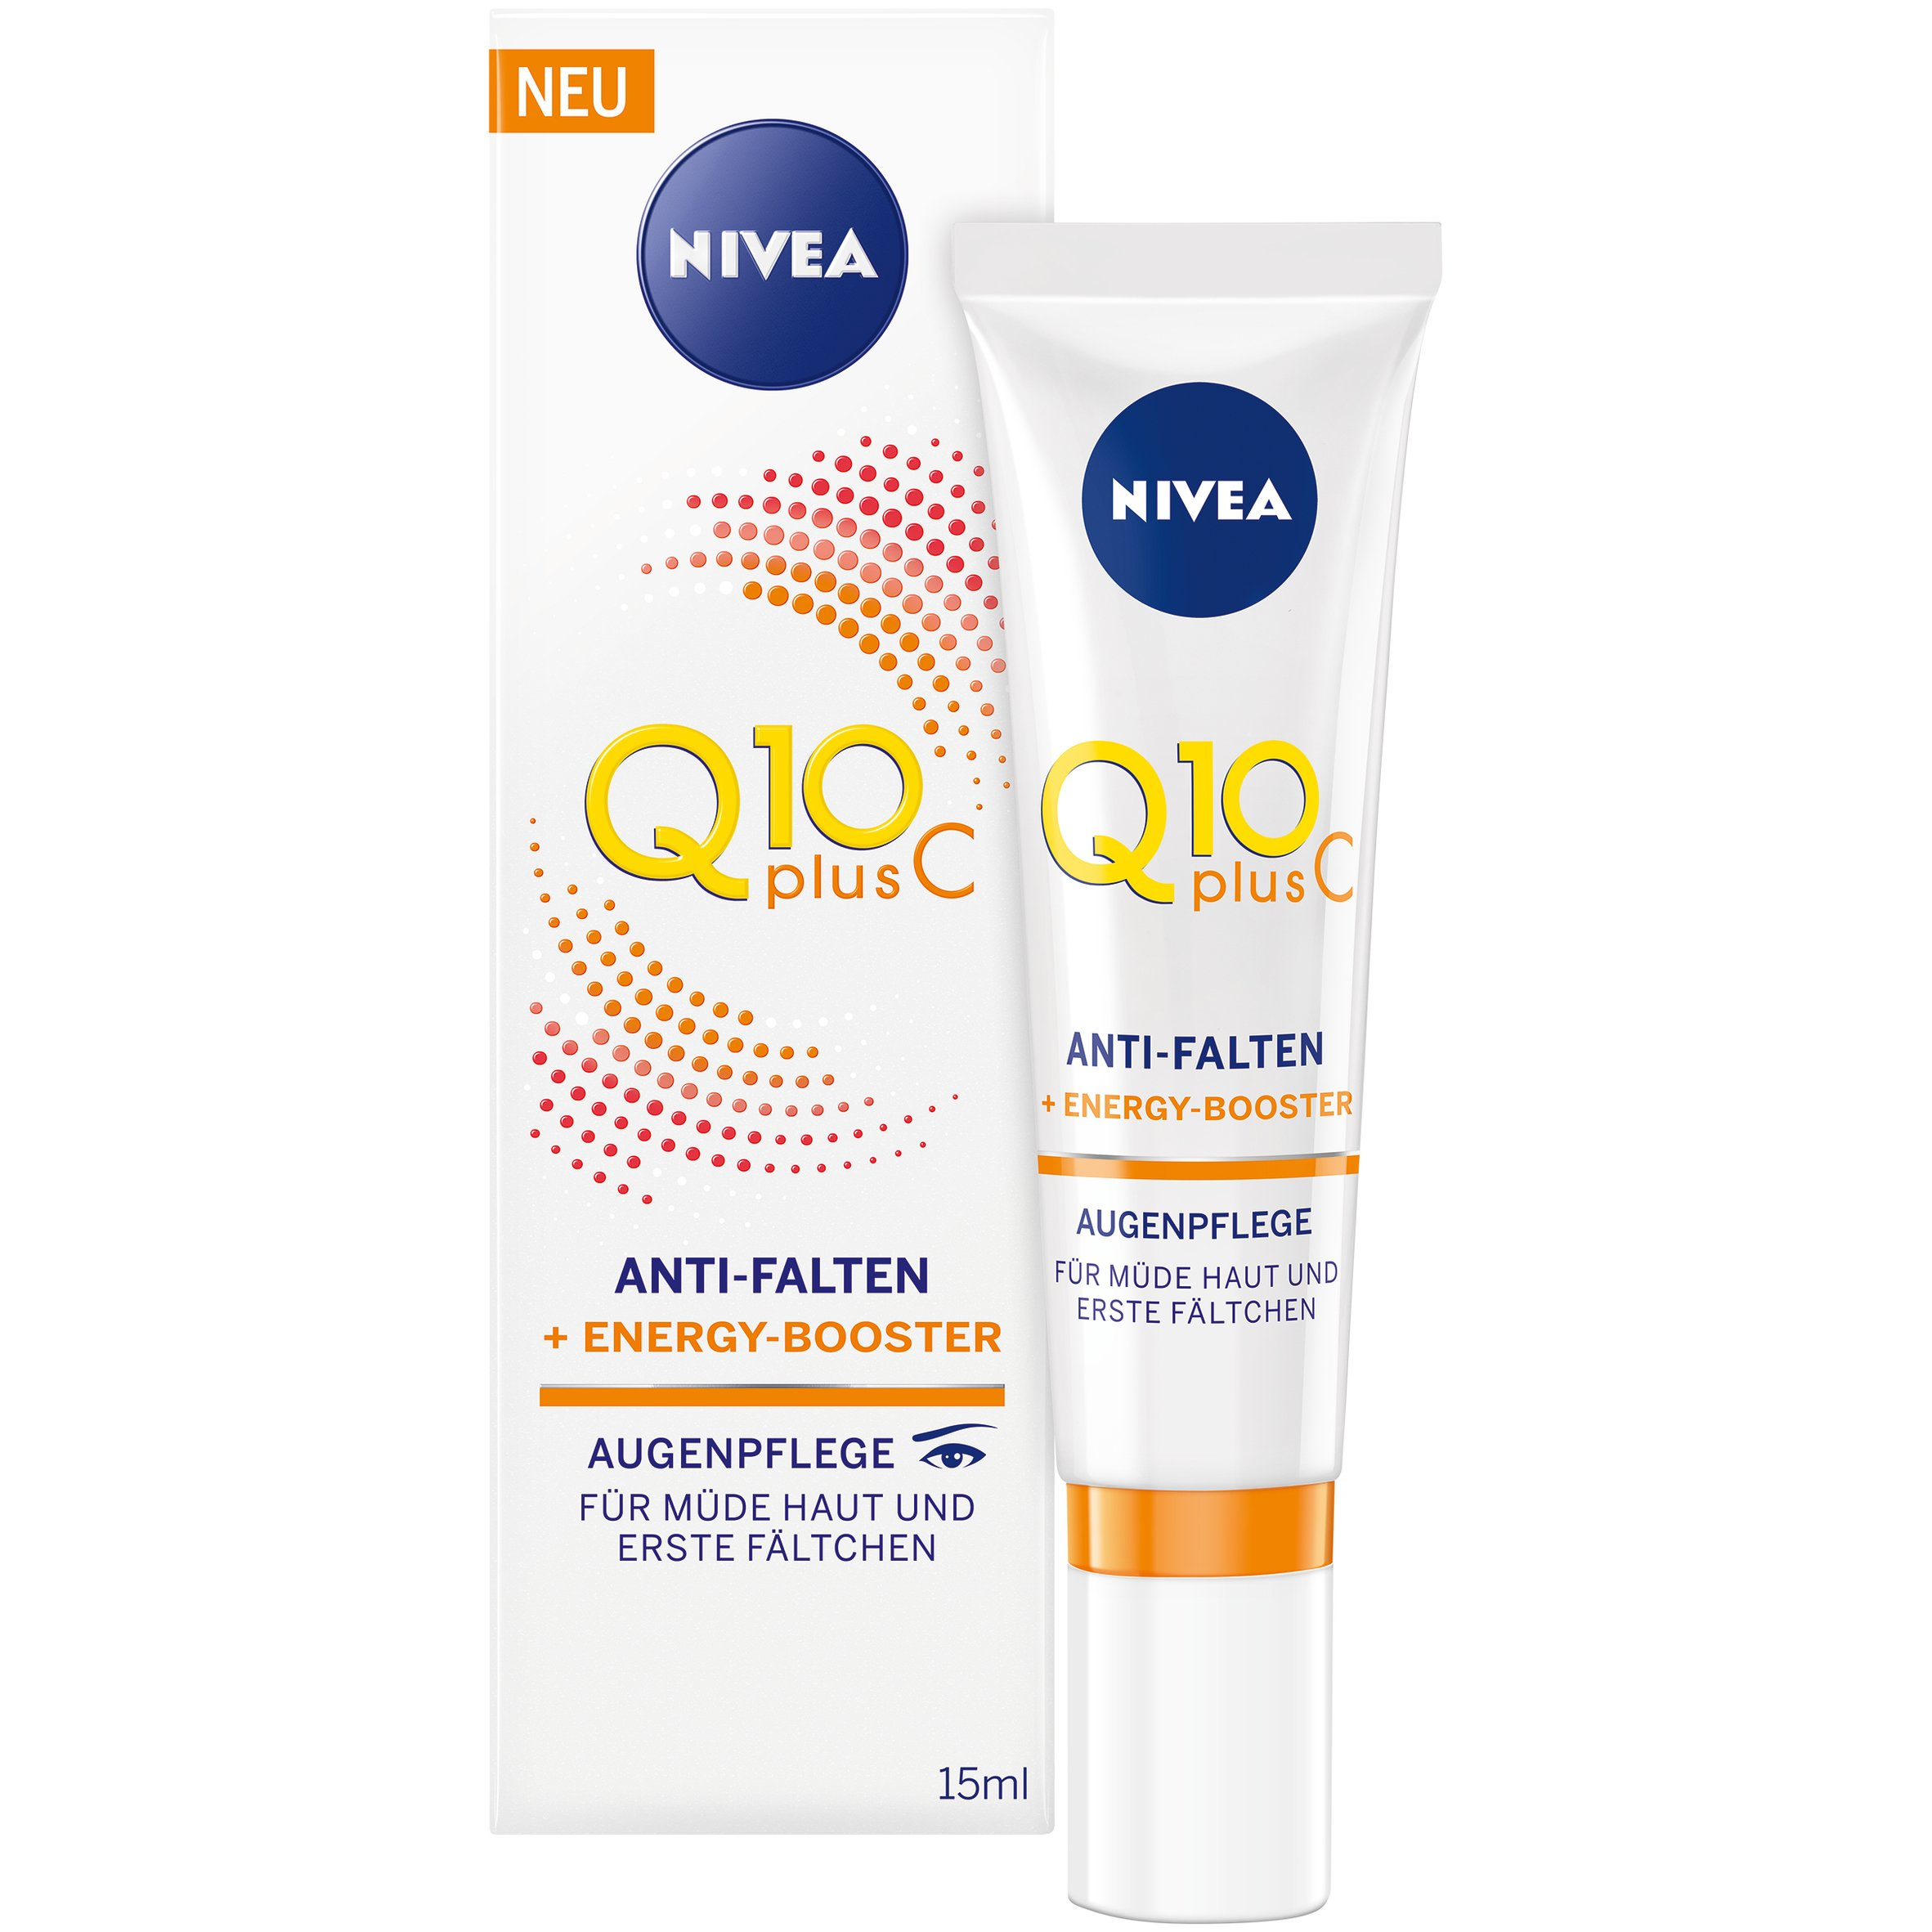 Nivea Q10 Plus C Anti-Wrinkle + Energy Booster Eye Cream For Tired Skin and Fine Lines 15ml